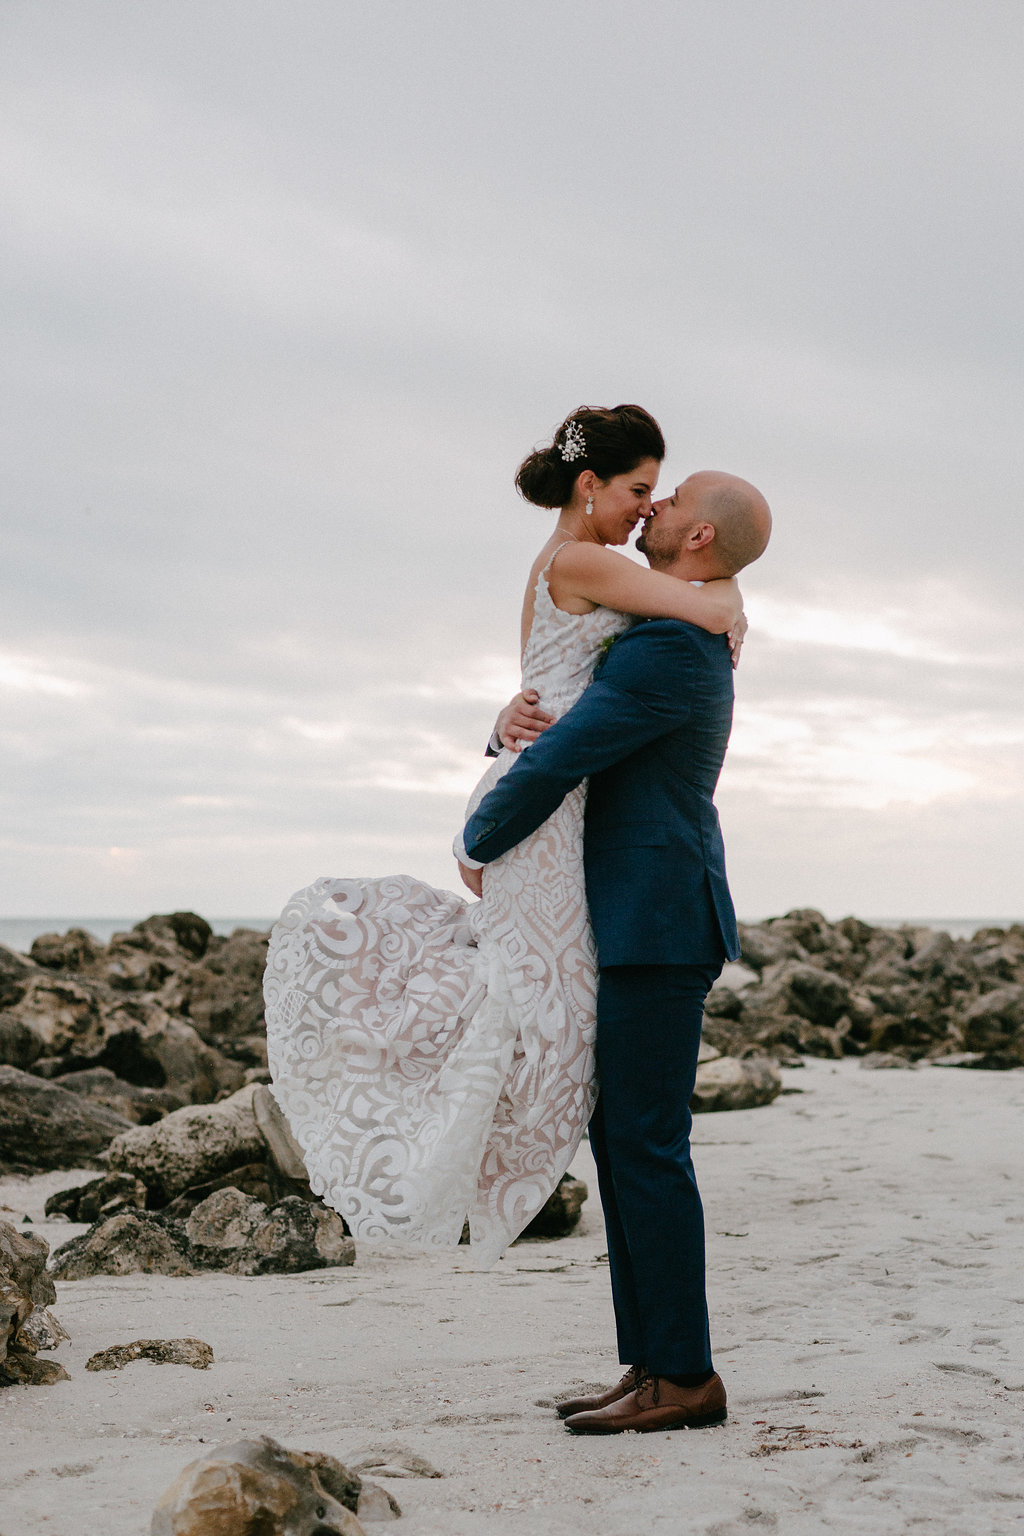 Destination Clearwater Beach Bride and Groom Intimate Romantic Wedding Portrait | Tampa Bay Photographer Grind and Press Photography | Hair and Makeup Michele Renee the Studio | Planner Special Moments Event Planning